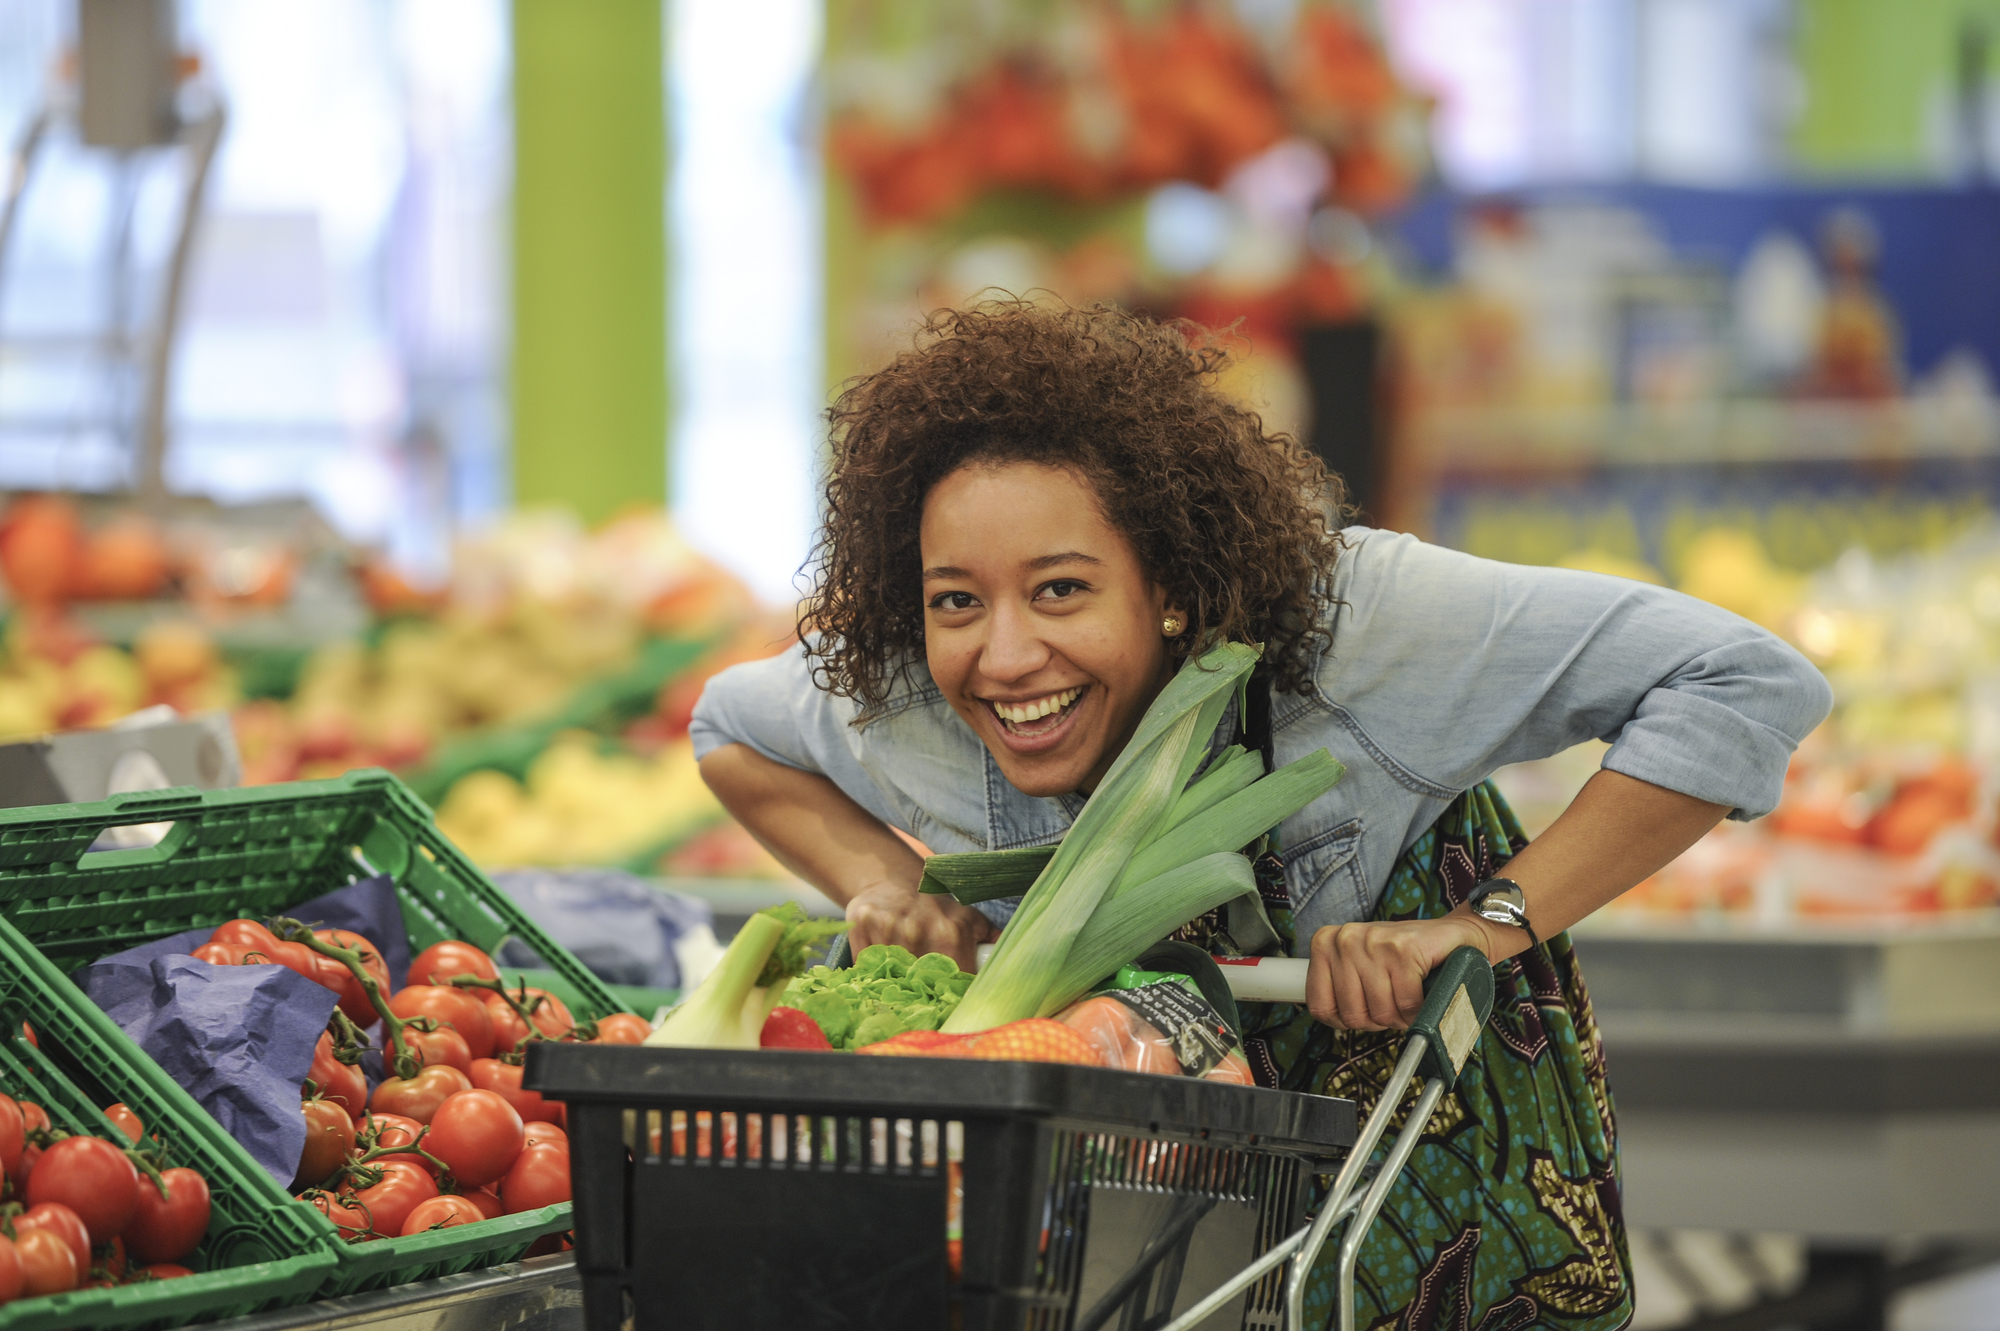 Apps like Ibotta can help you save money on your groceries